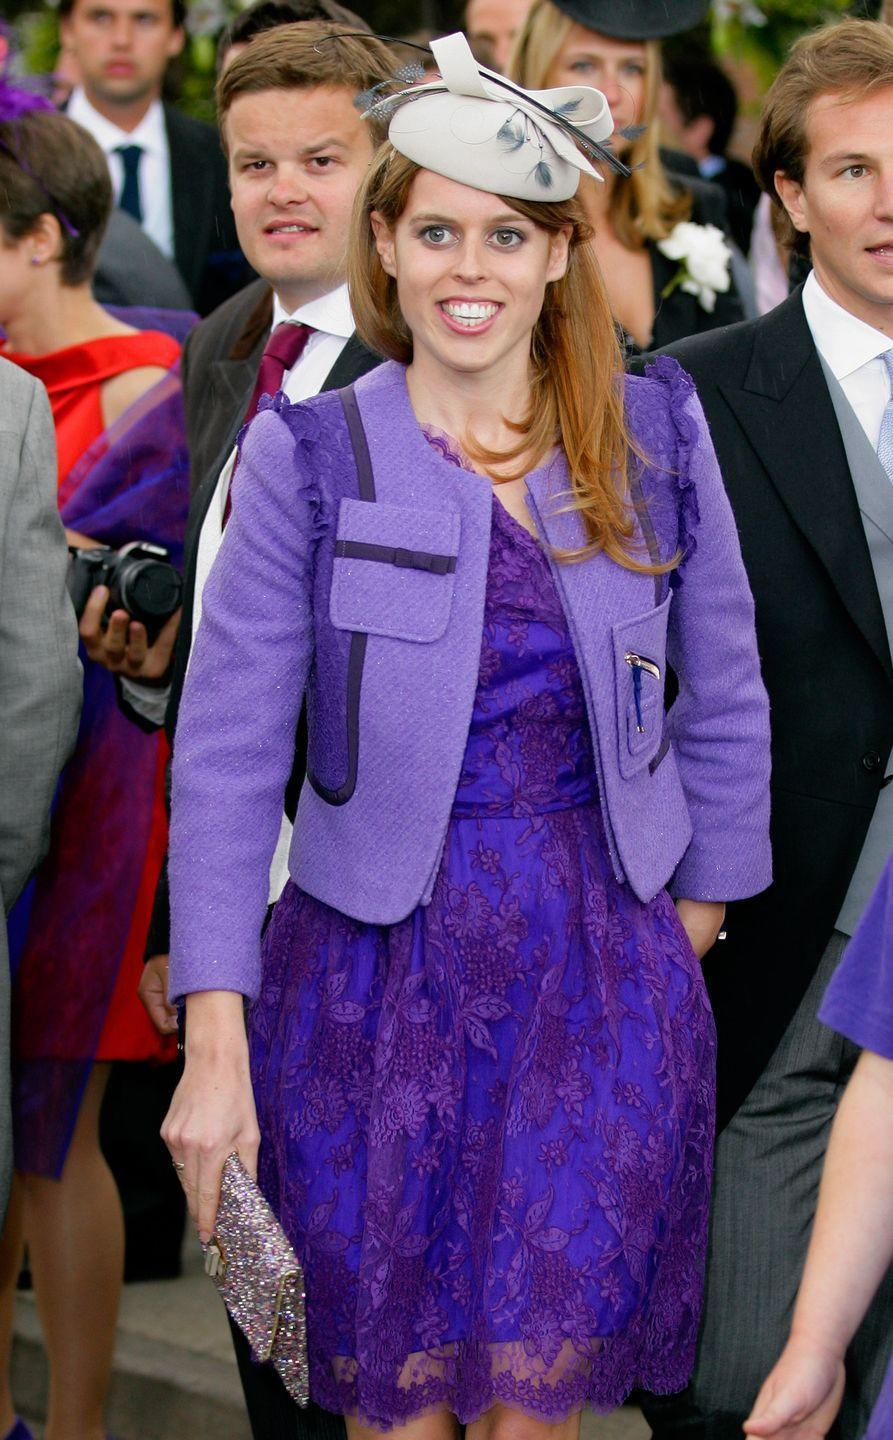 <p>Purple is Princess Beatrice's go-to wedding guest color. Not only did she wear it to her sister Princess Eugenie's wedding, she also chose it for the wedding of Sam Waley-Cohen and Annabel Ballin in 2011.</p>